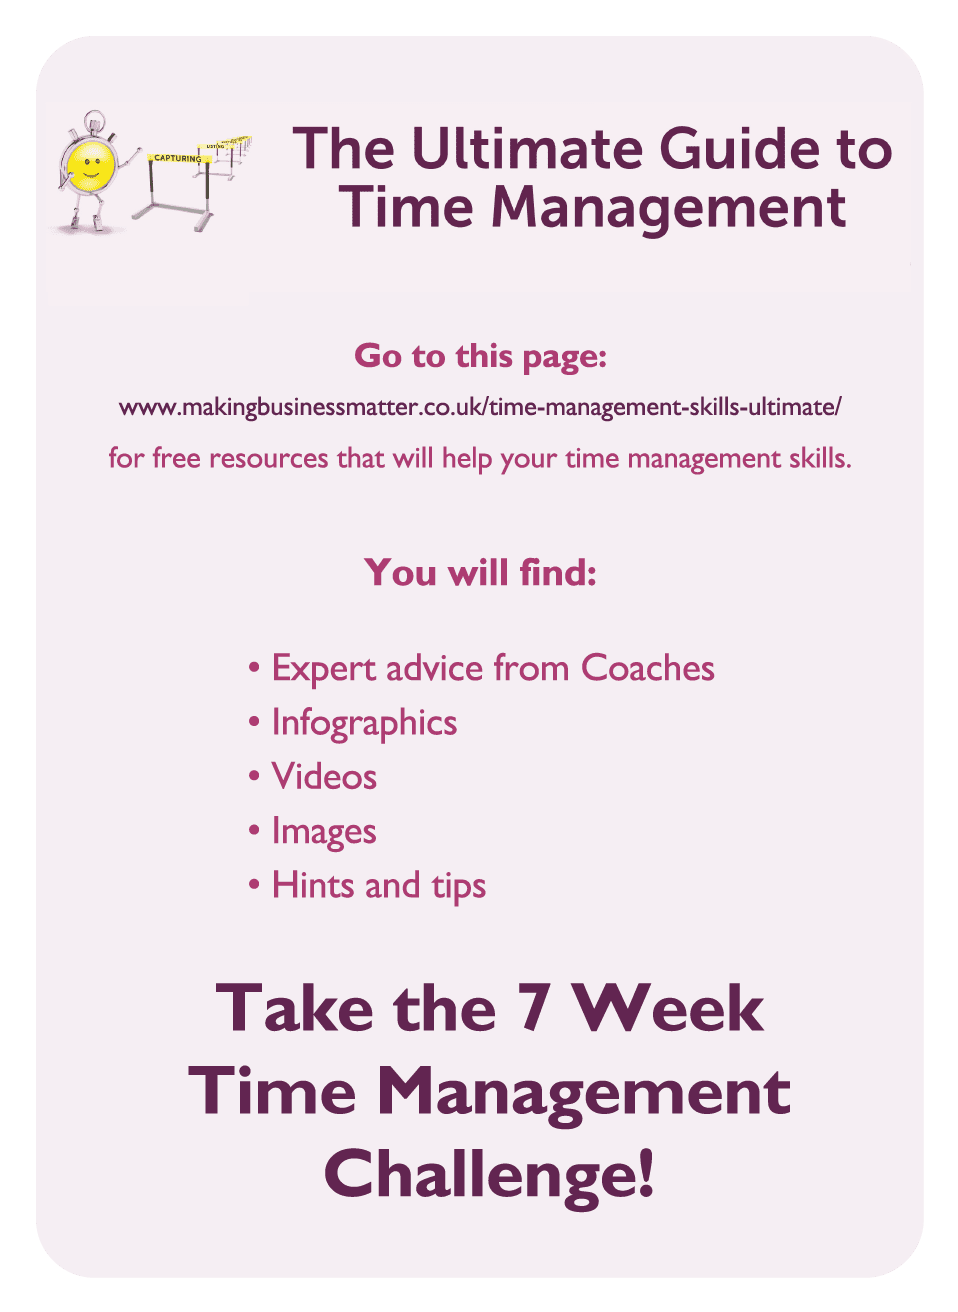 Coaching card titled The Ultimate Guide to Time Management